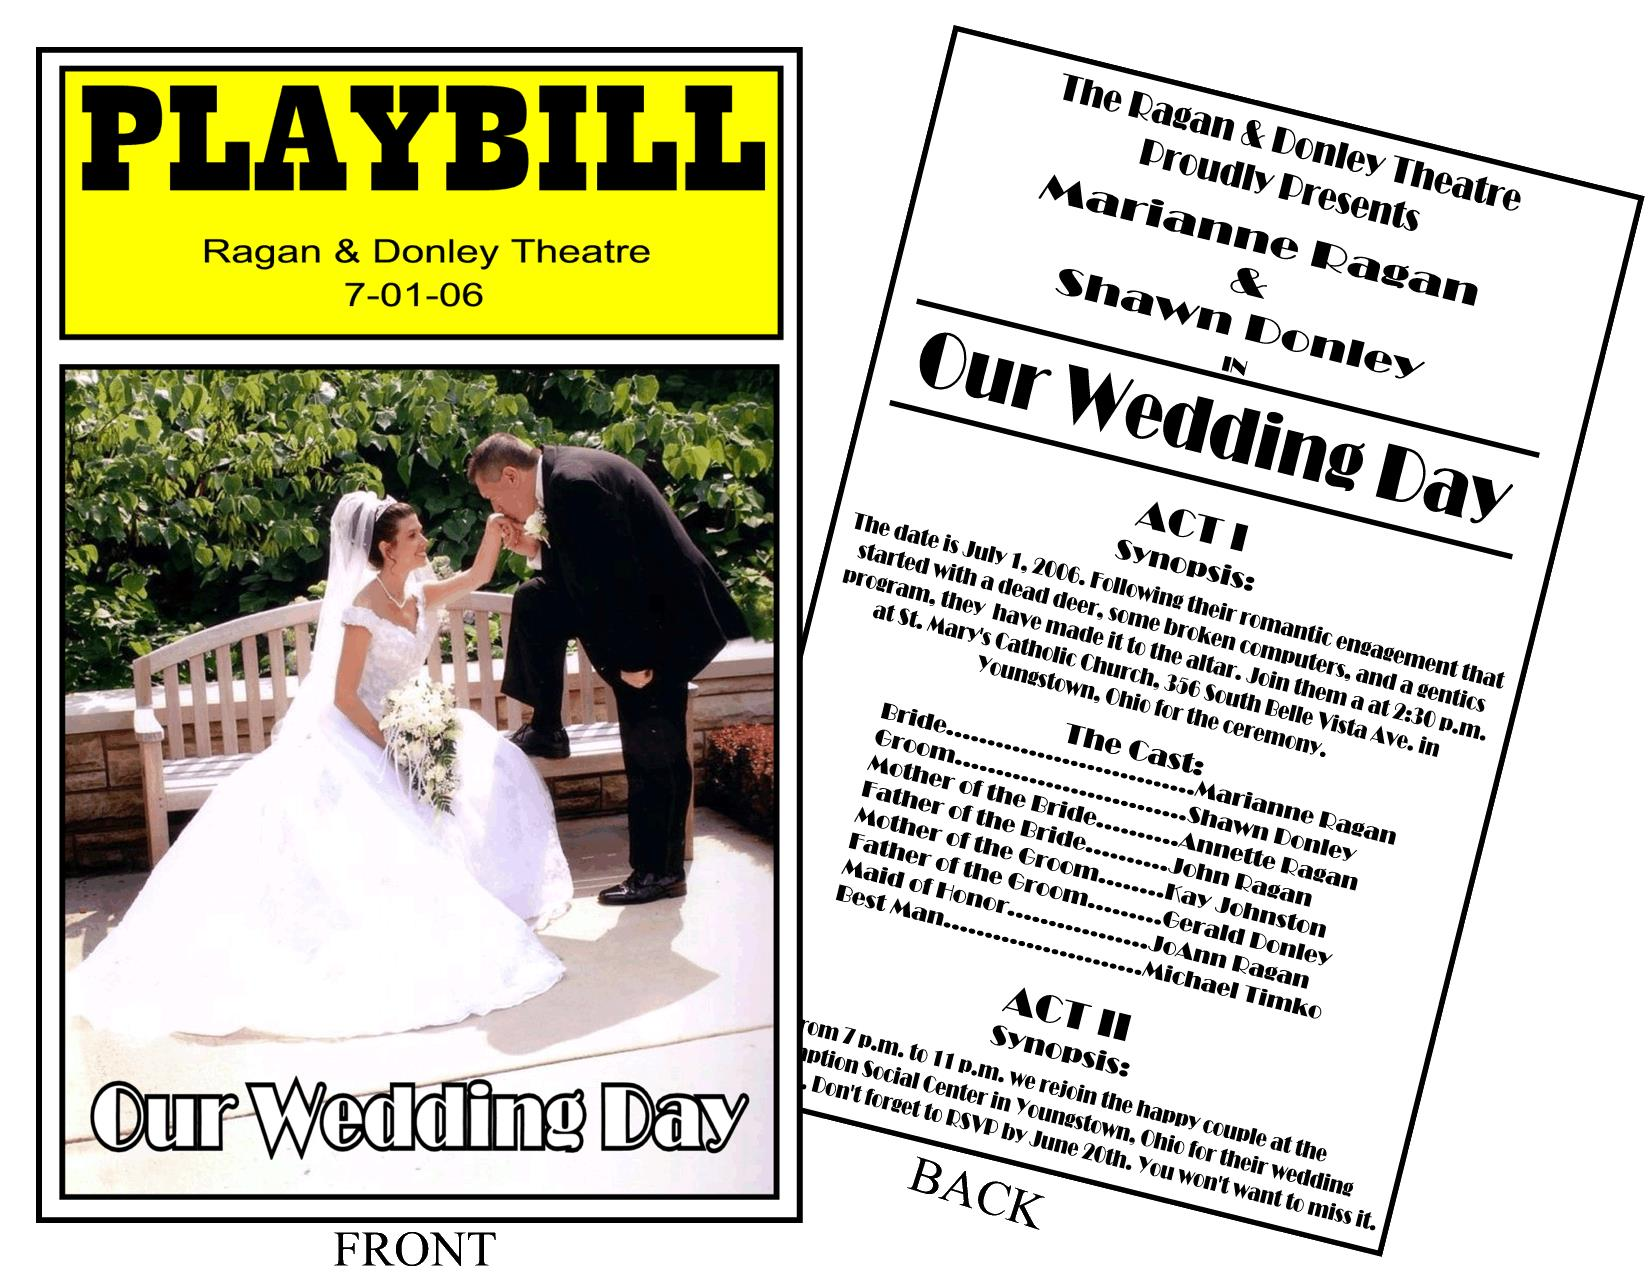 playbill birthday card ; playbill-birthday-invitation-playbillussamplelg